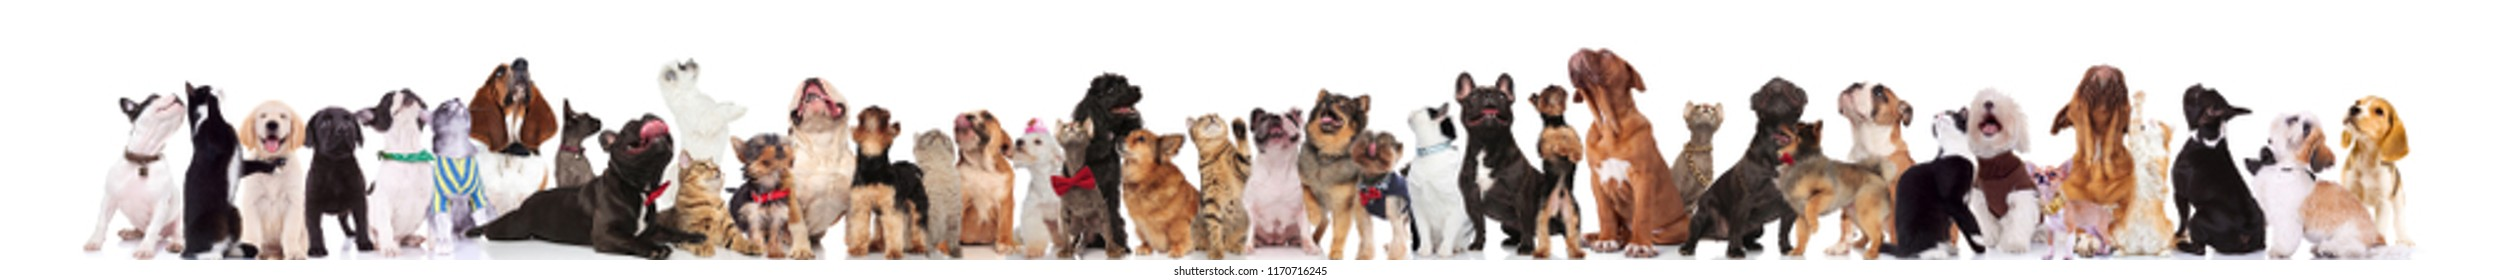 large group of many curious dogs and cats look up while standing and sitting on white background, wearing bowties, and colorful collars